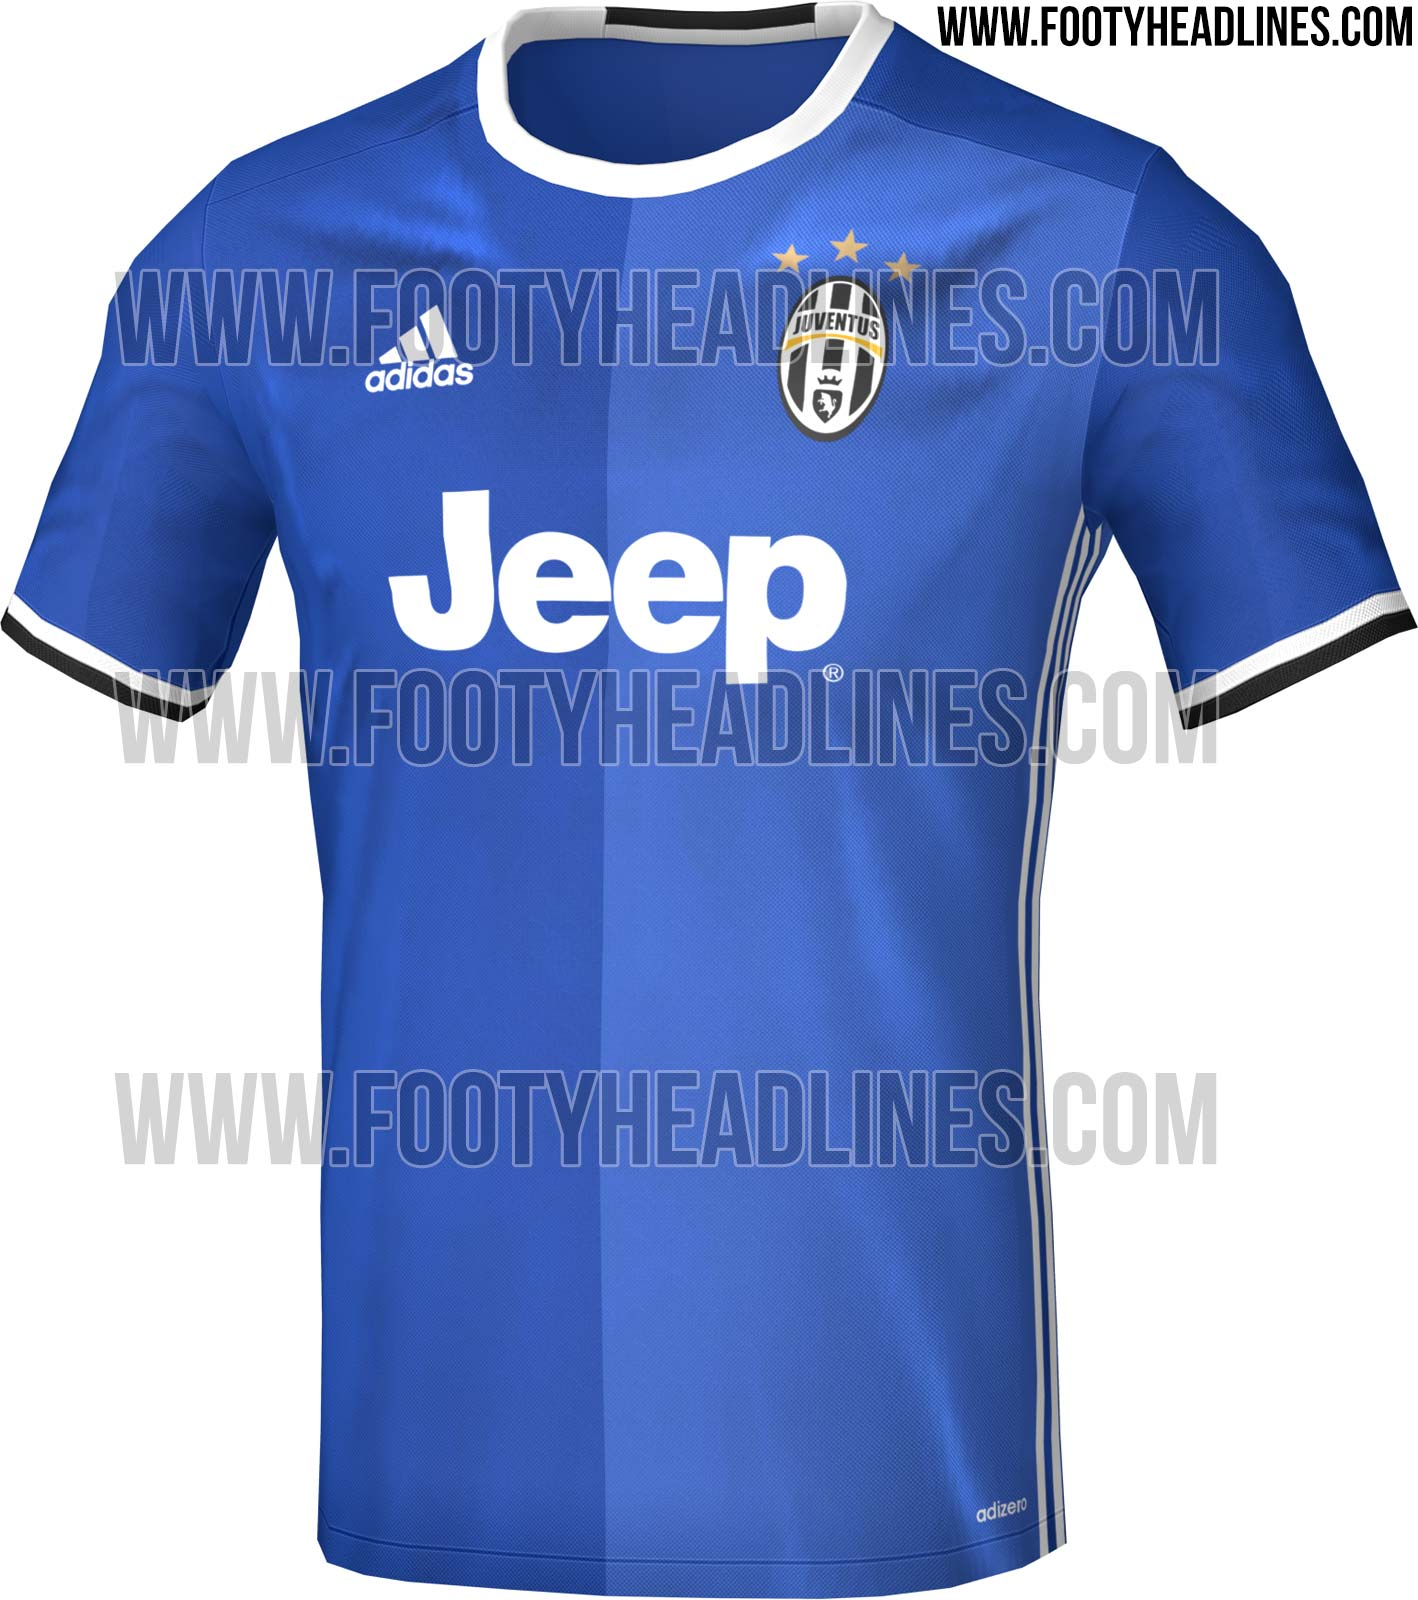 Club Teams  Jerseys  Archive  - Page 4 - Forza Inter Forums 0104b85fdd64